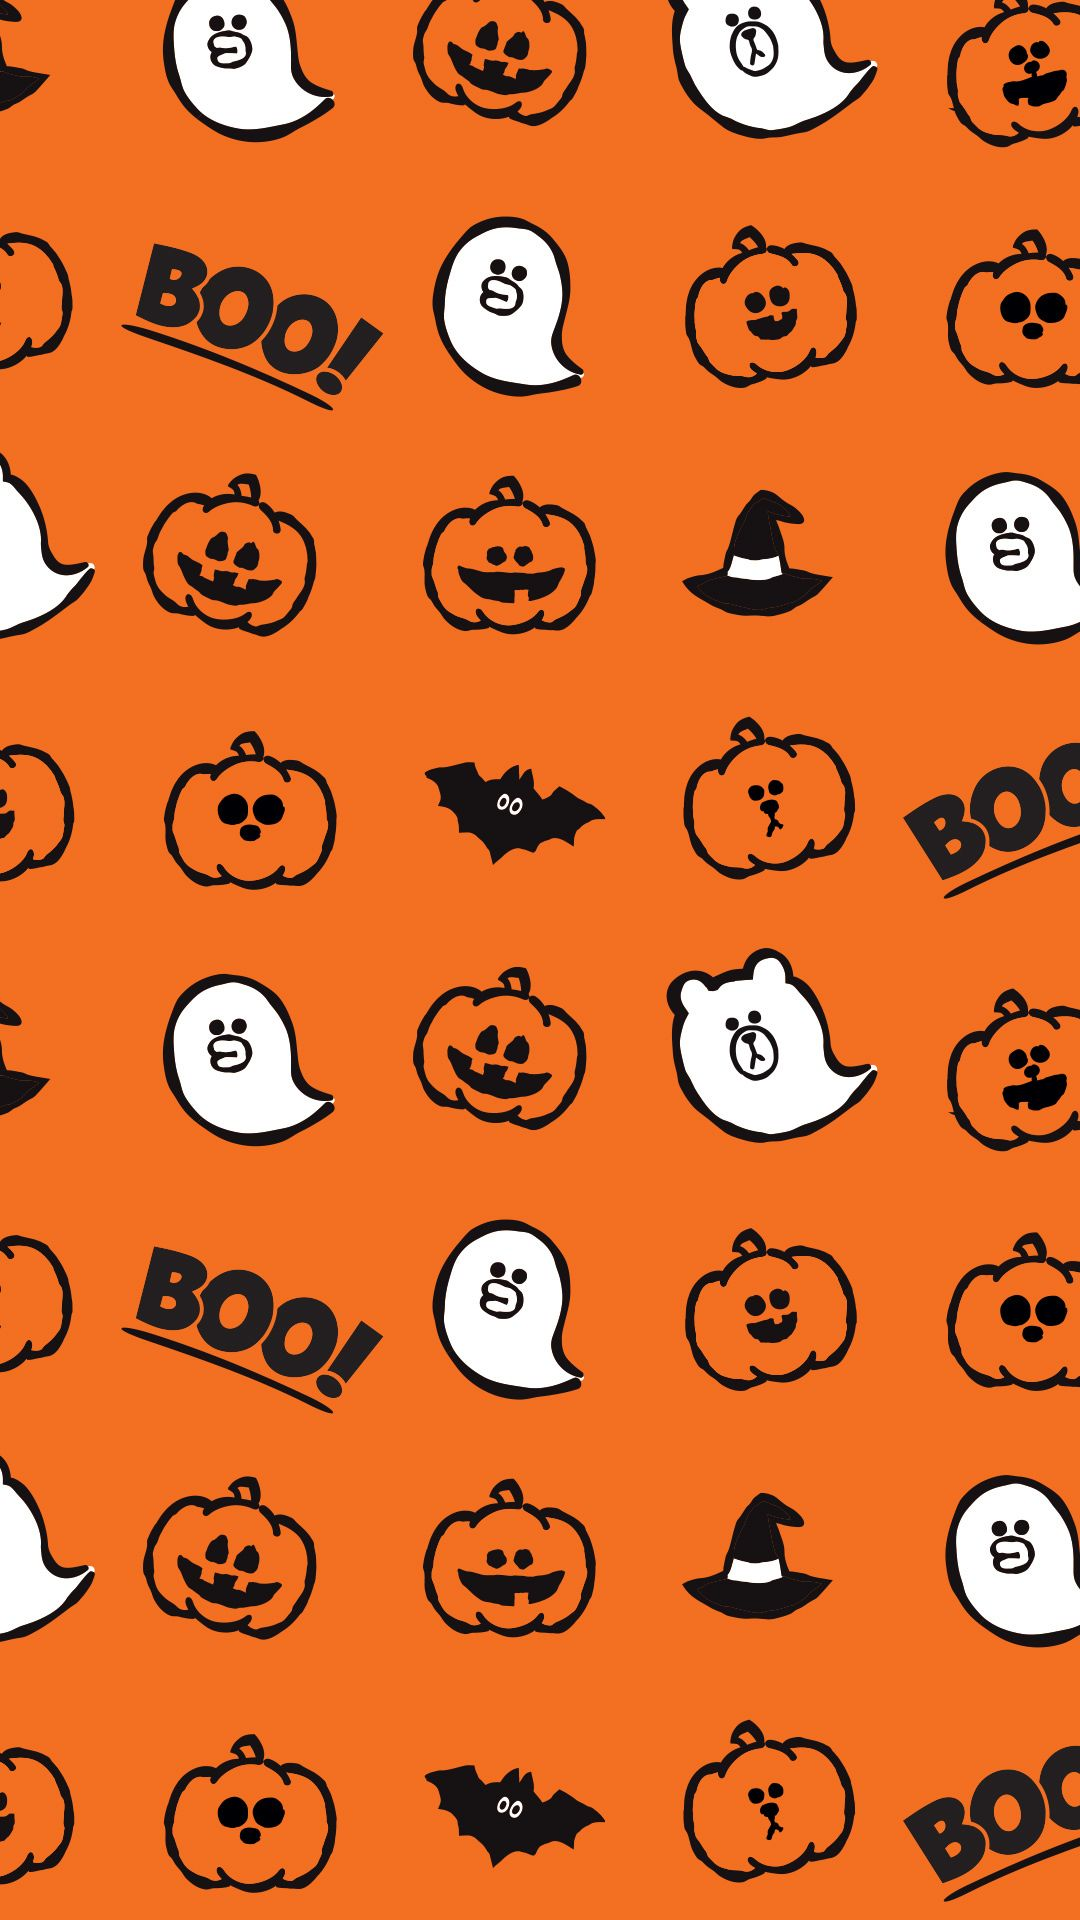 Linefriends Pic Gifs Pics And Wallpapers By Line Friends Line Friends Halloween Wallpaper Iphone Cute Halloween Pictures